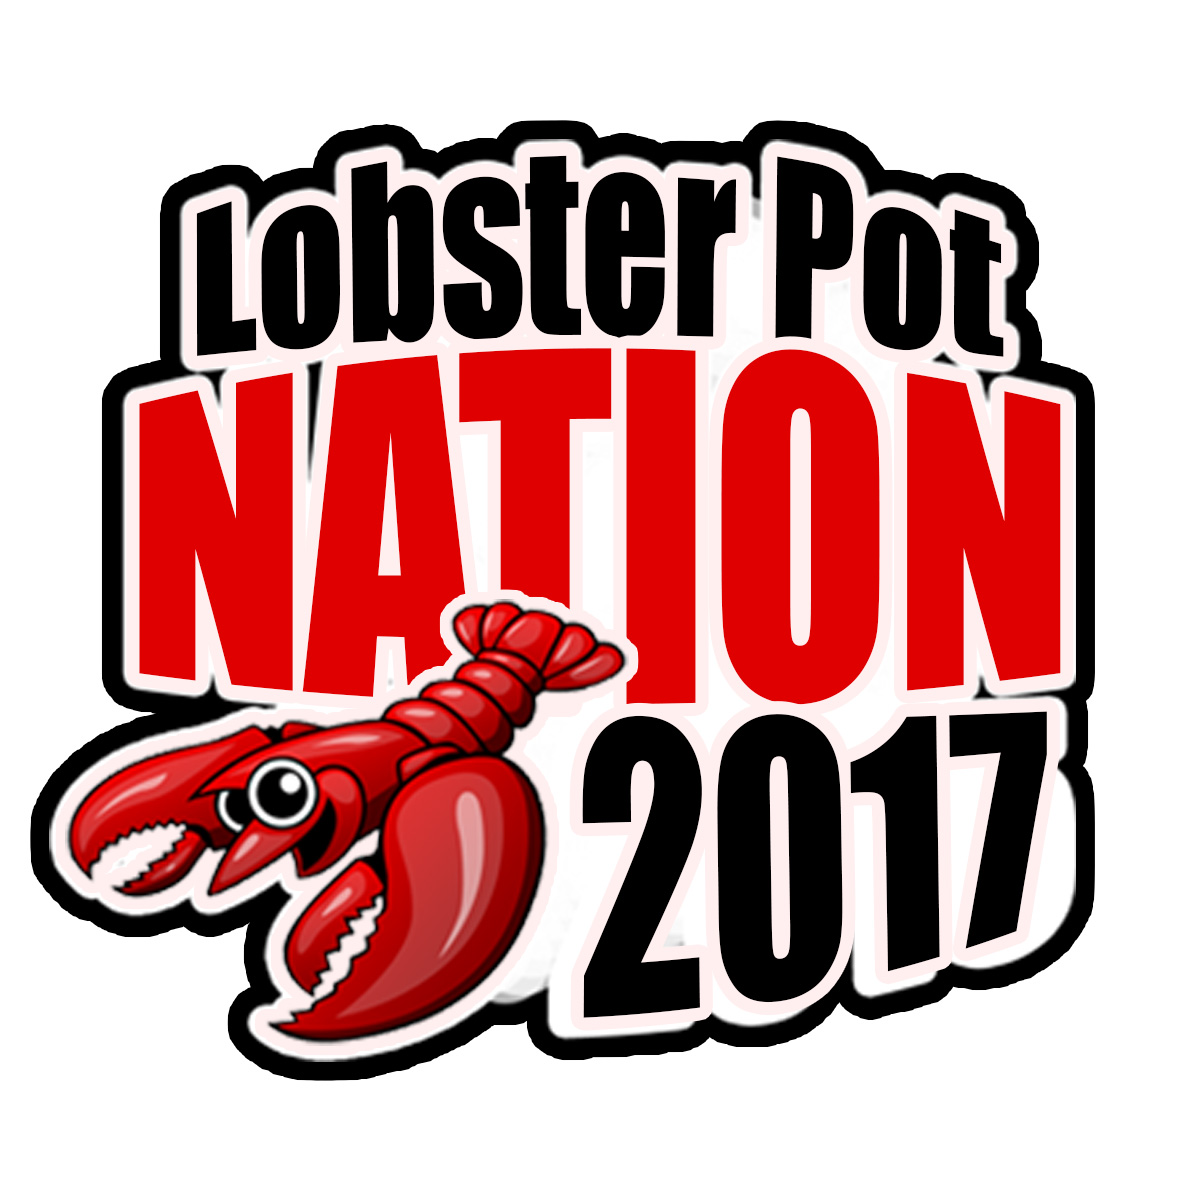 SilverPeak Studios is partnered with Lobster Pot Nation